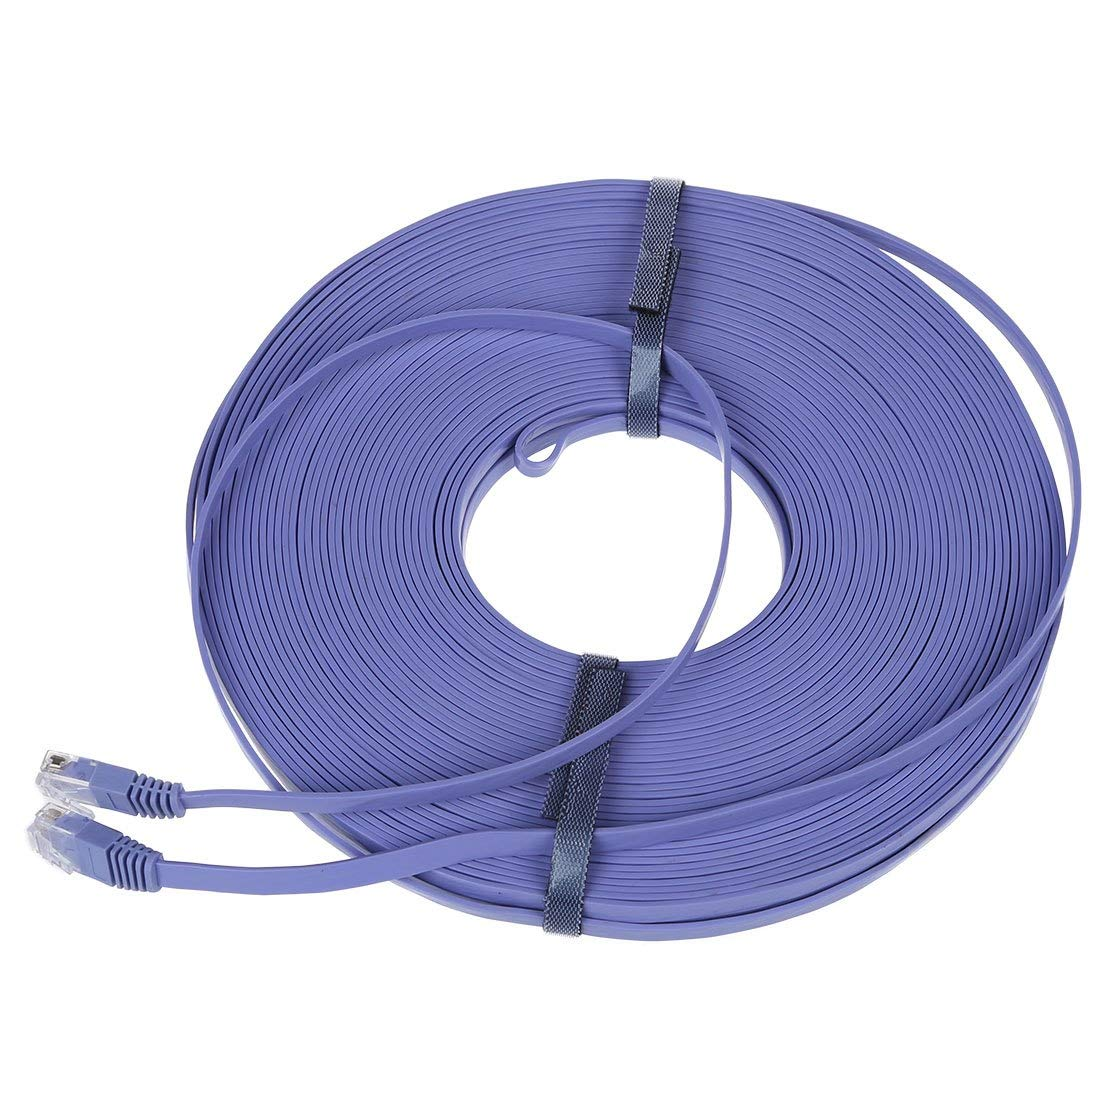 Gimax Best price 98FT 30M CAT6 CAT 6 Flat UTP Ethernet Network Cable RJ45 Patch LAN Cord Blue